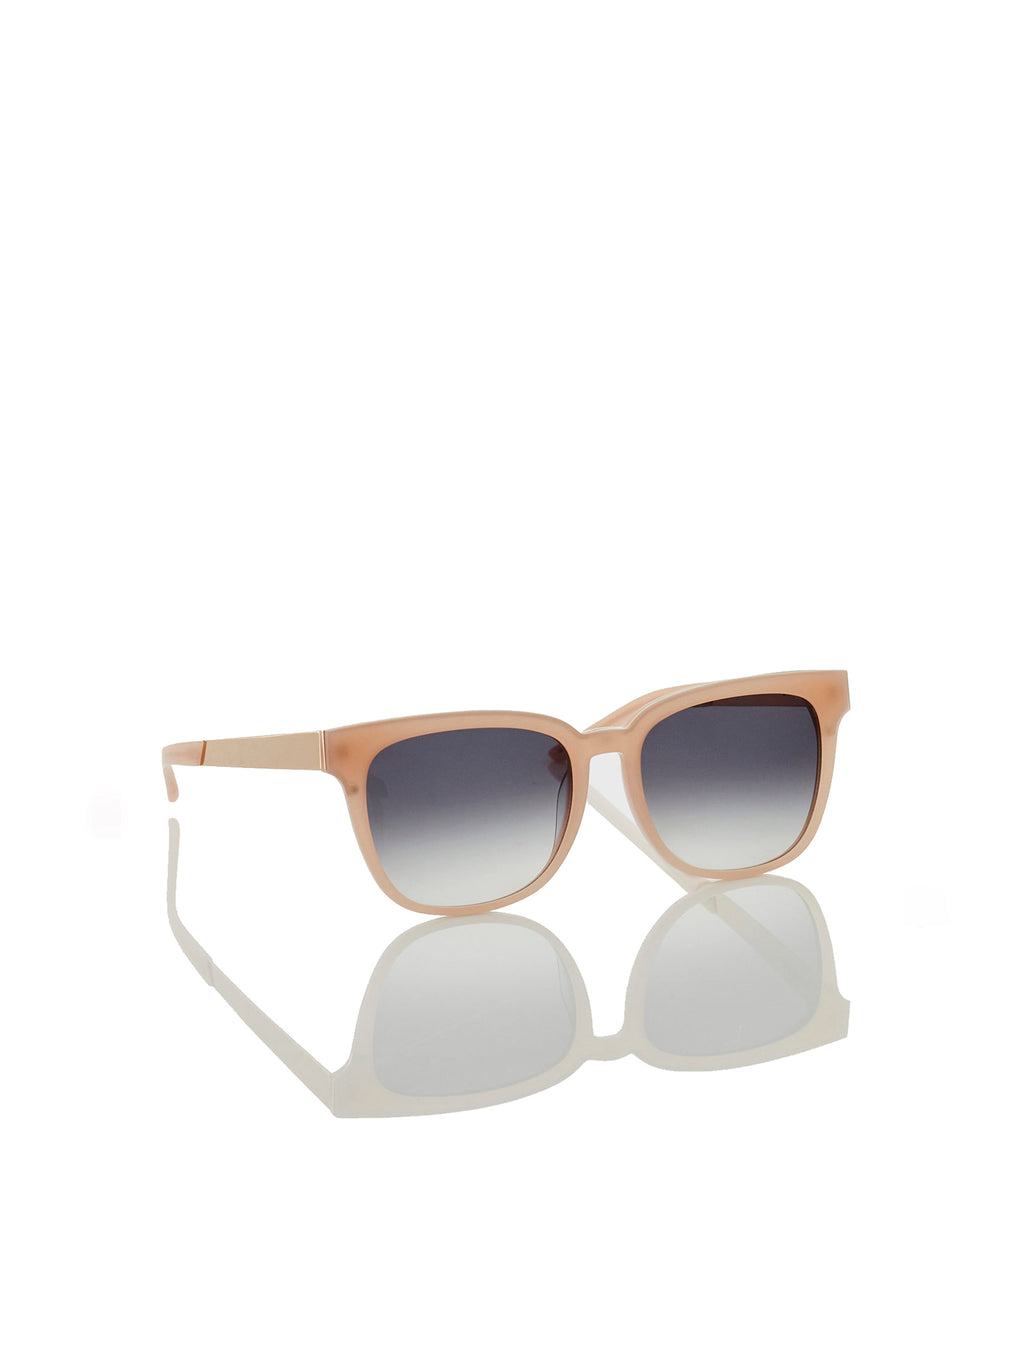 JH Eyewear No. 05 (acetate) petal gold